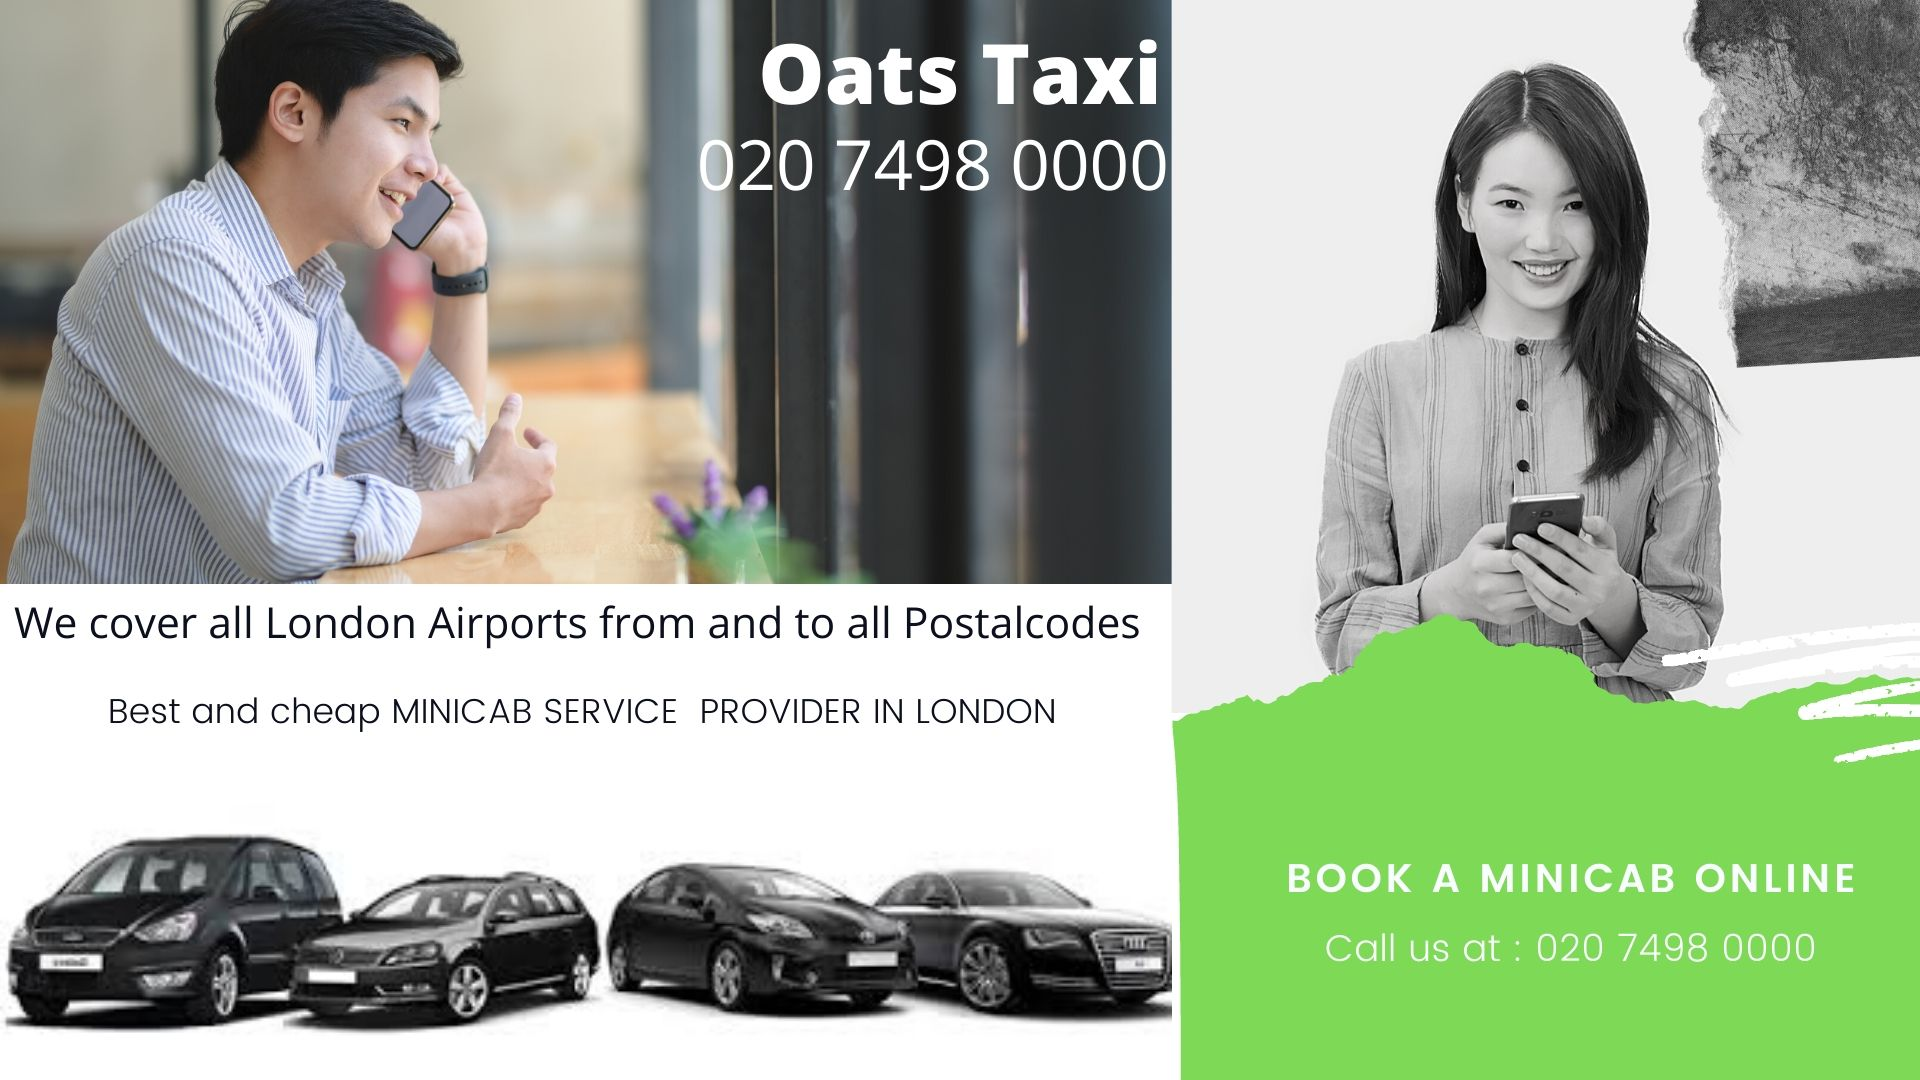 Taxi Office Near ALFRISTON ROAD, Battersea SW11, Taxi From Battersea SW11 To Gatwick Airport